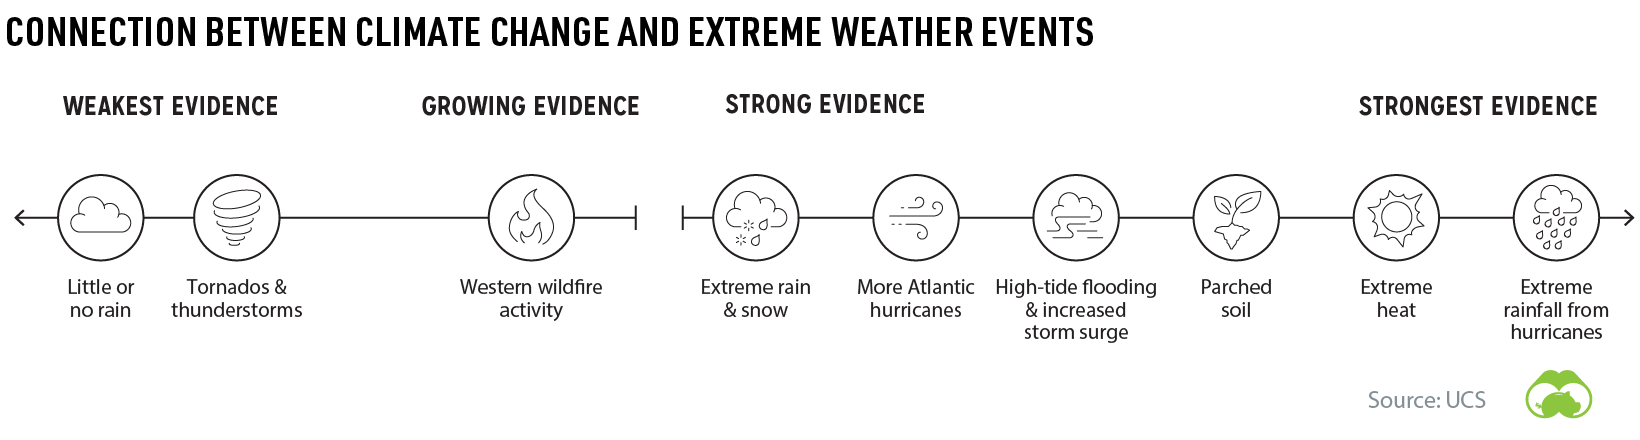 climate change and extreme weather events